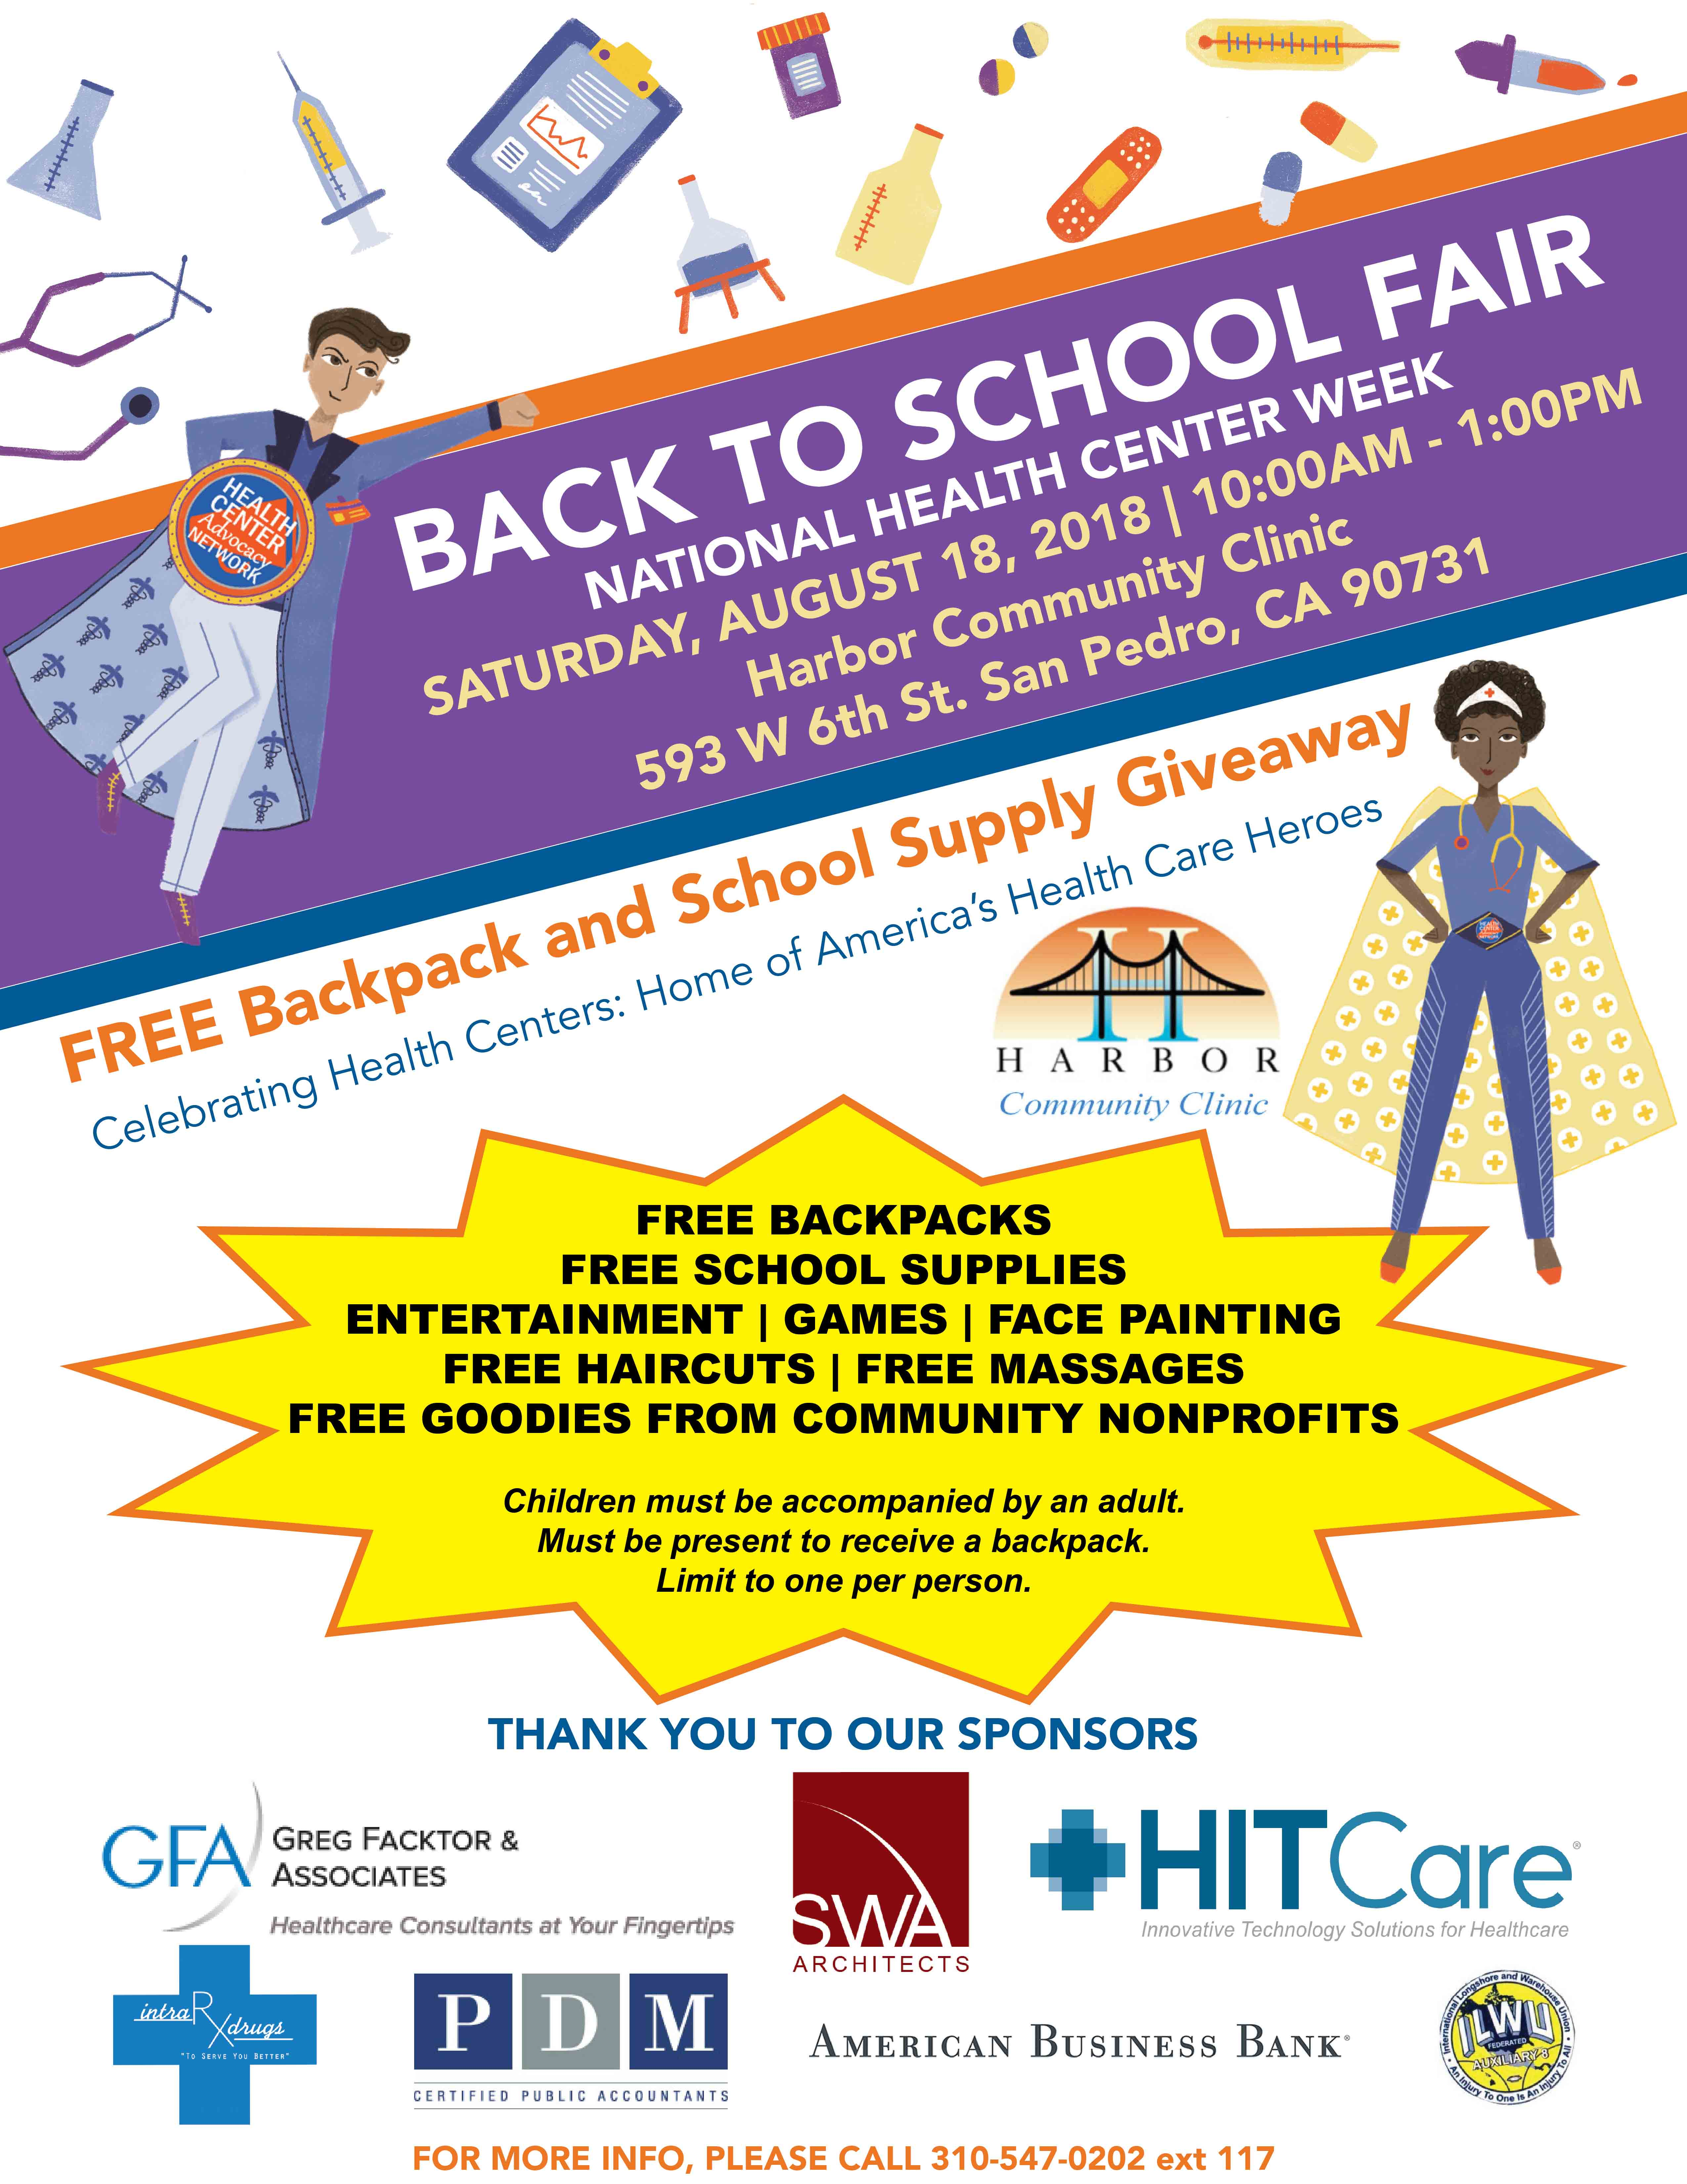 Back to School Fair 2018! Free Backpacks and School Supplies